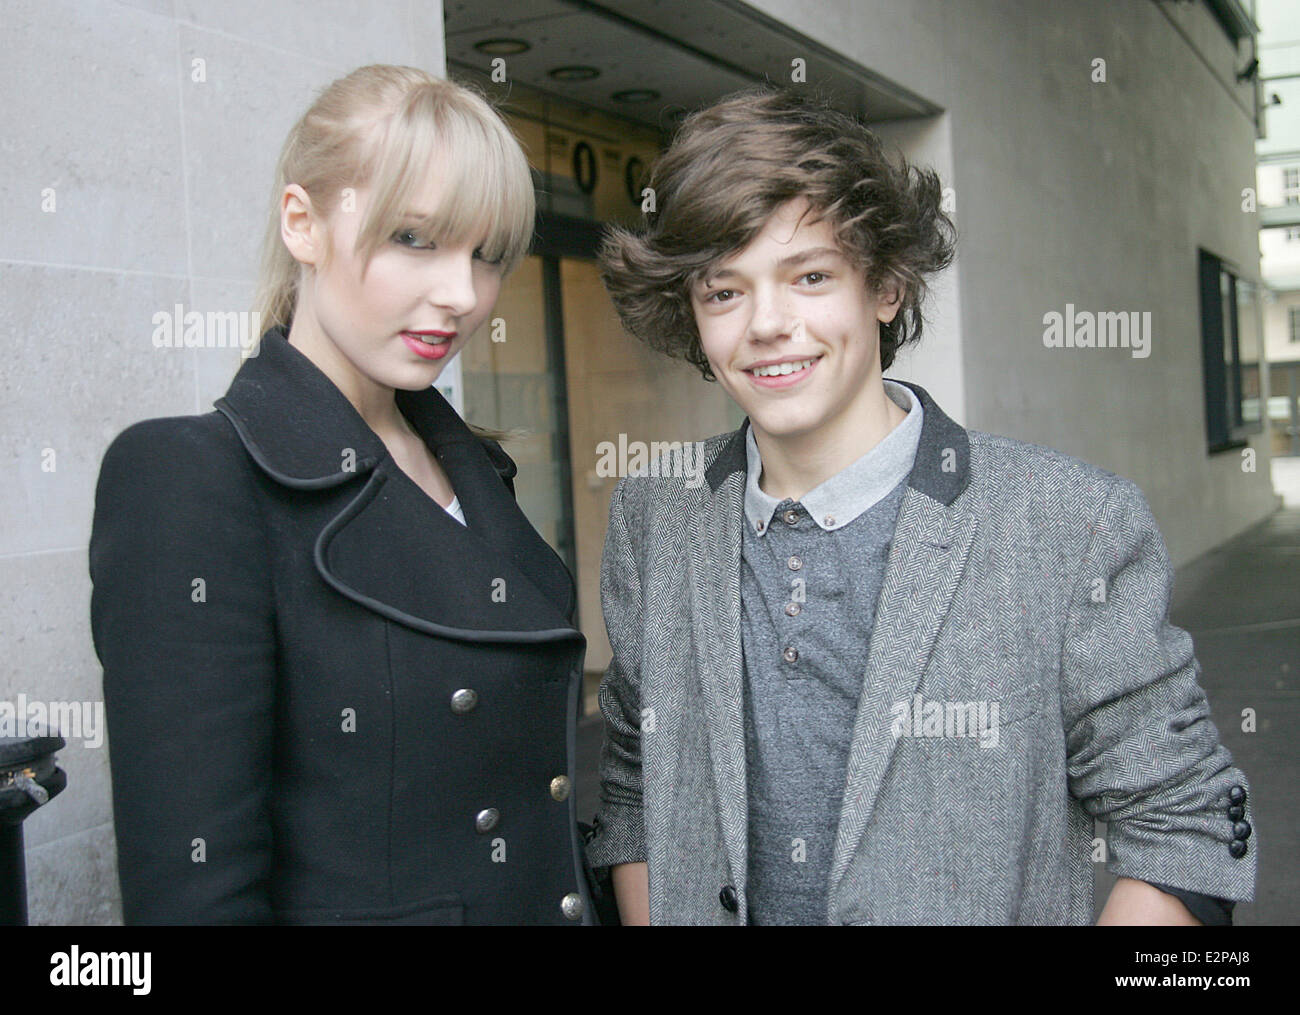 Jacob Skelton Aka Harry Styles And A Taylor Swift Lookalikes Make An